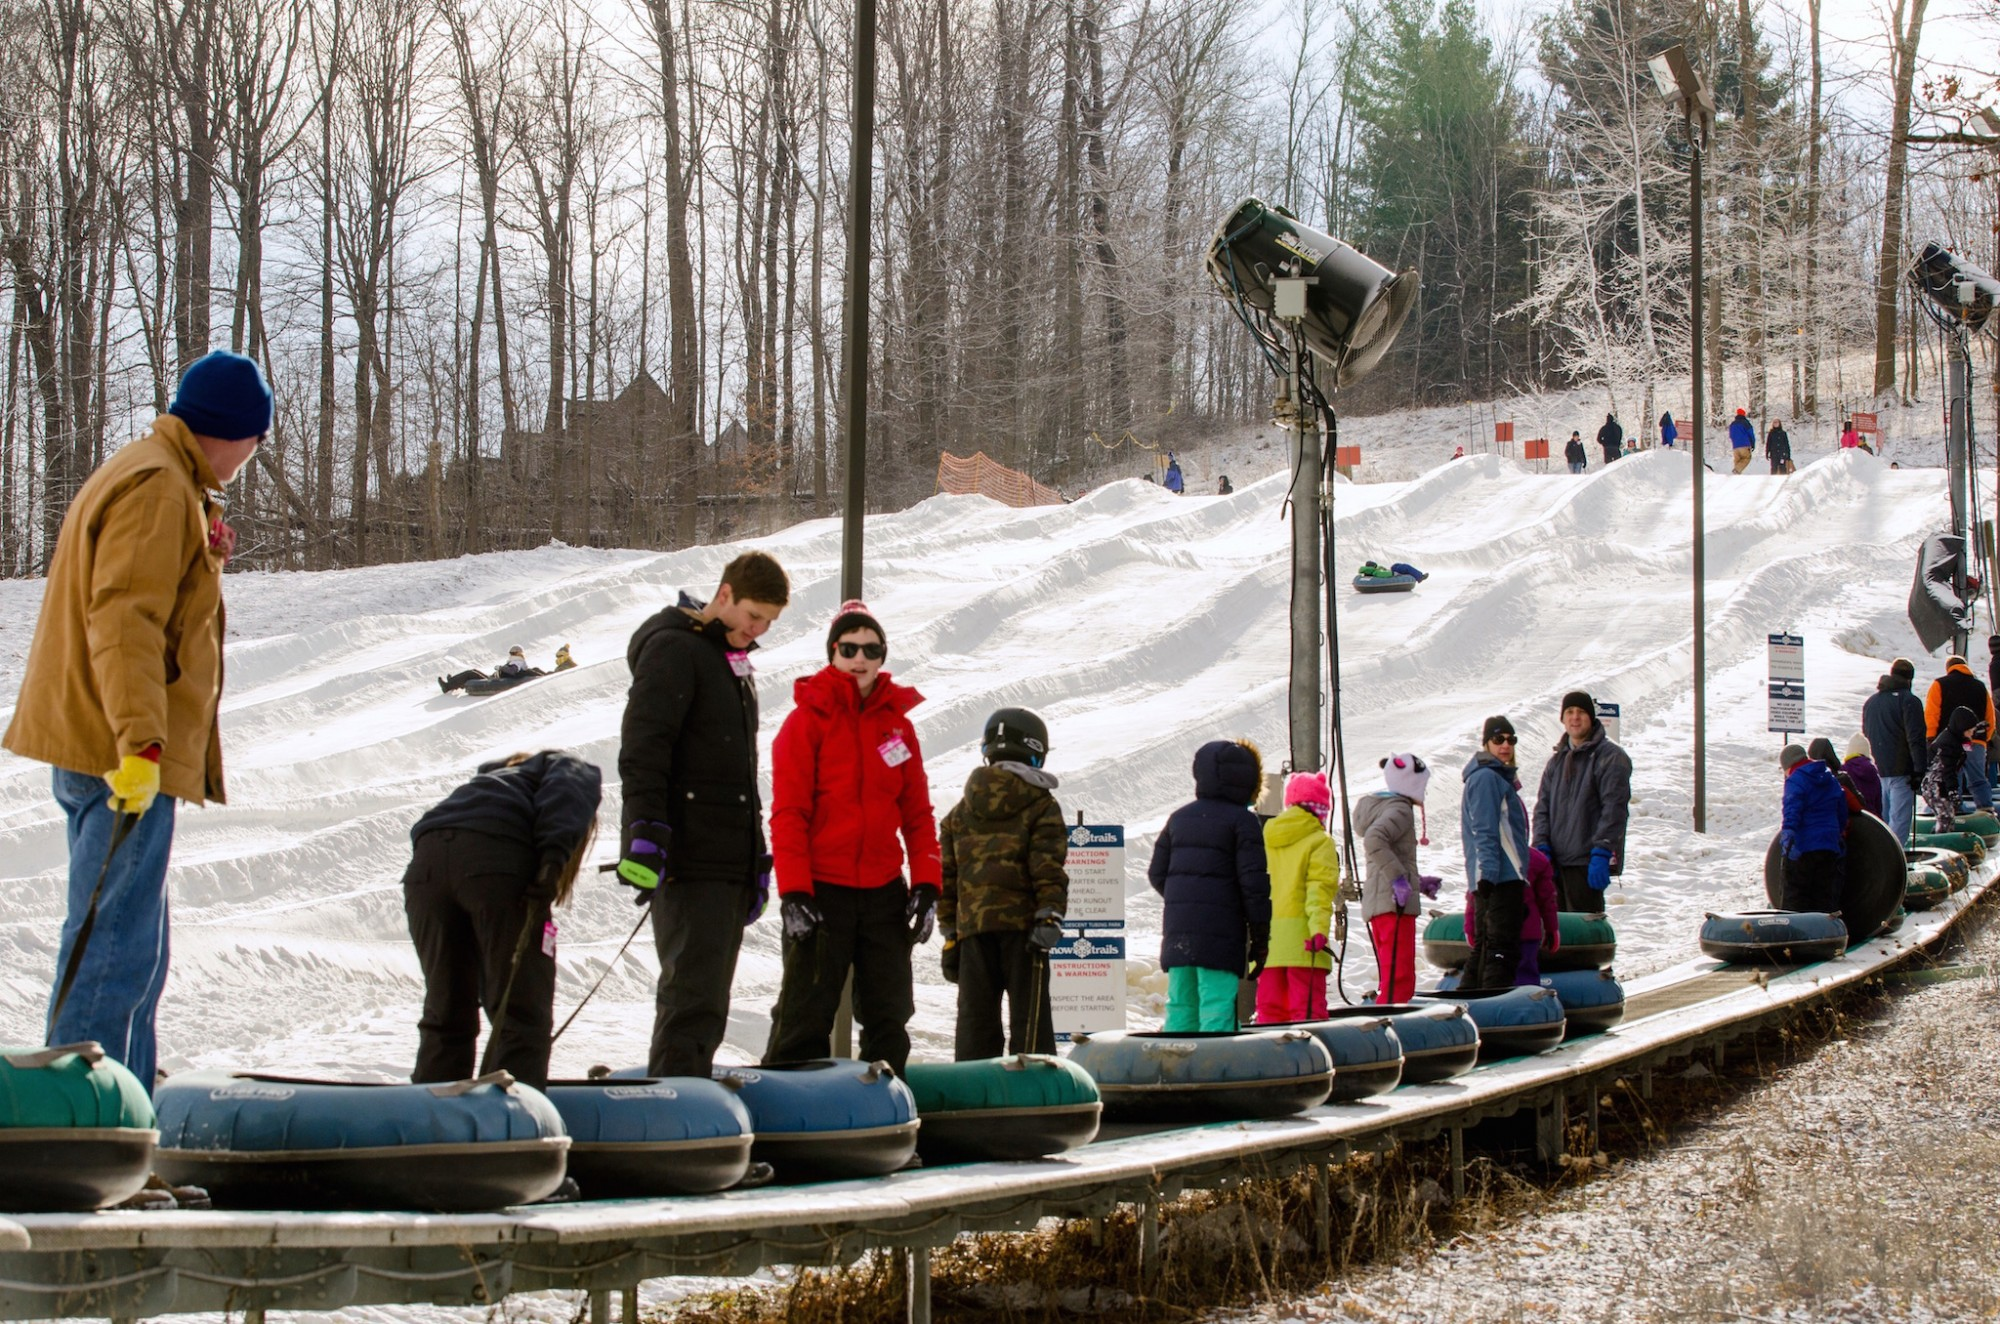 Tubing Park 10th Anniversary Opening Day